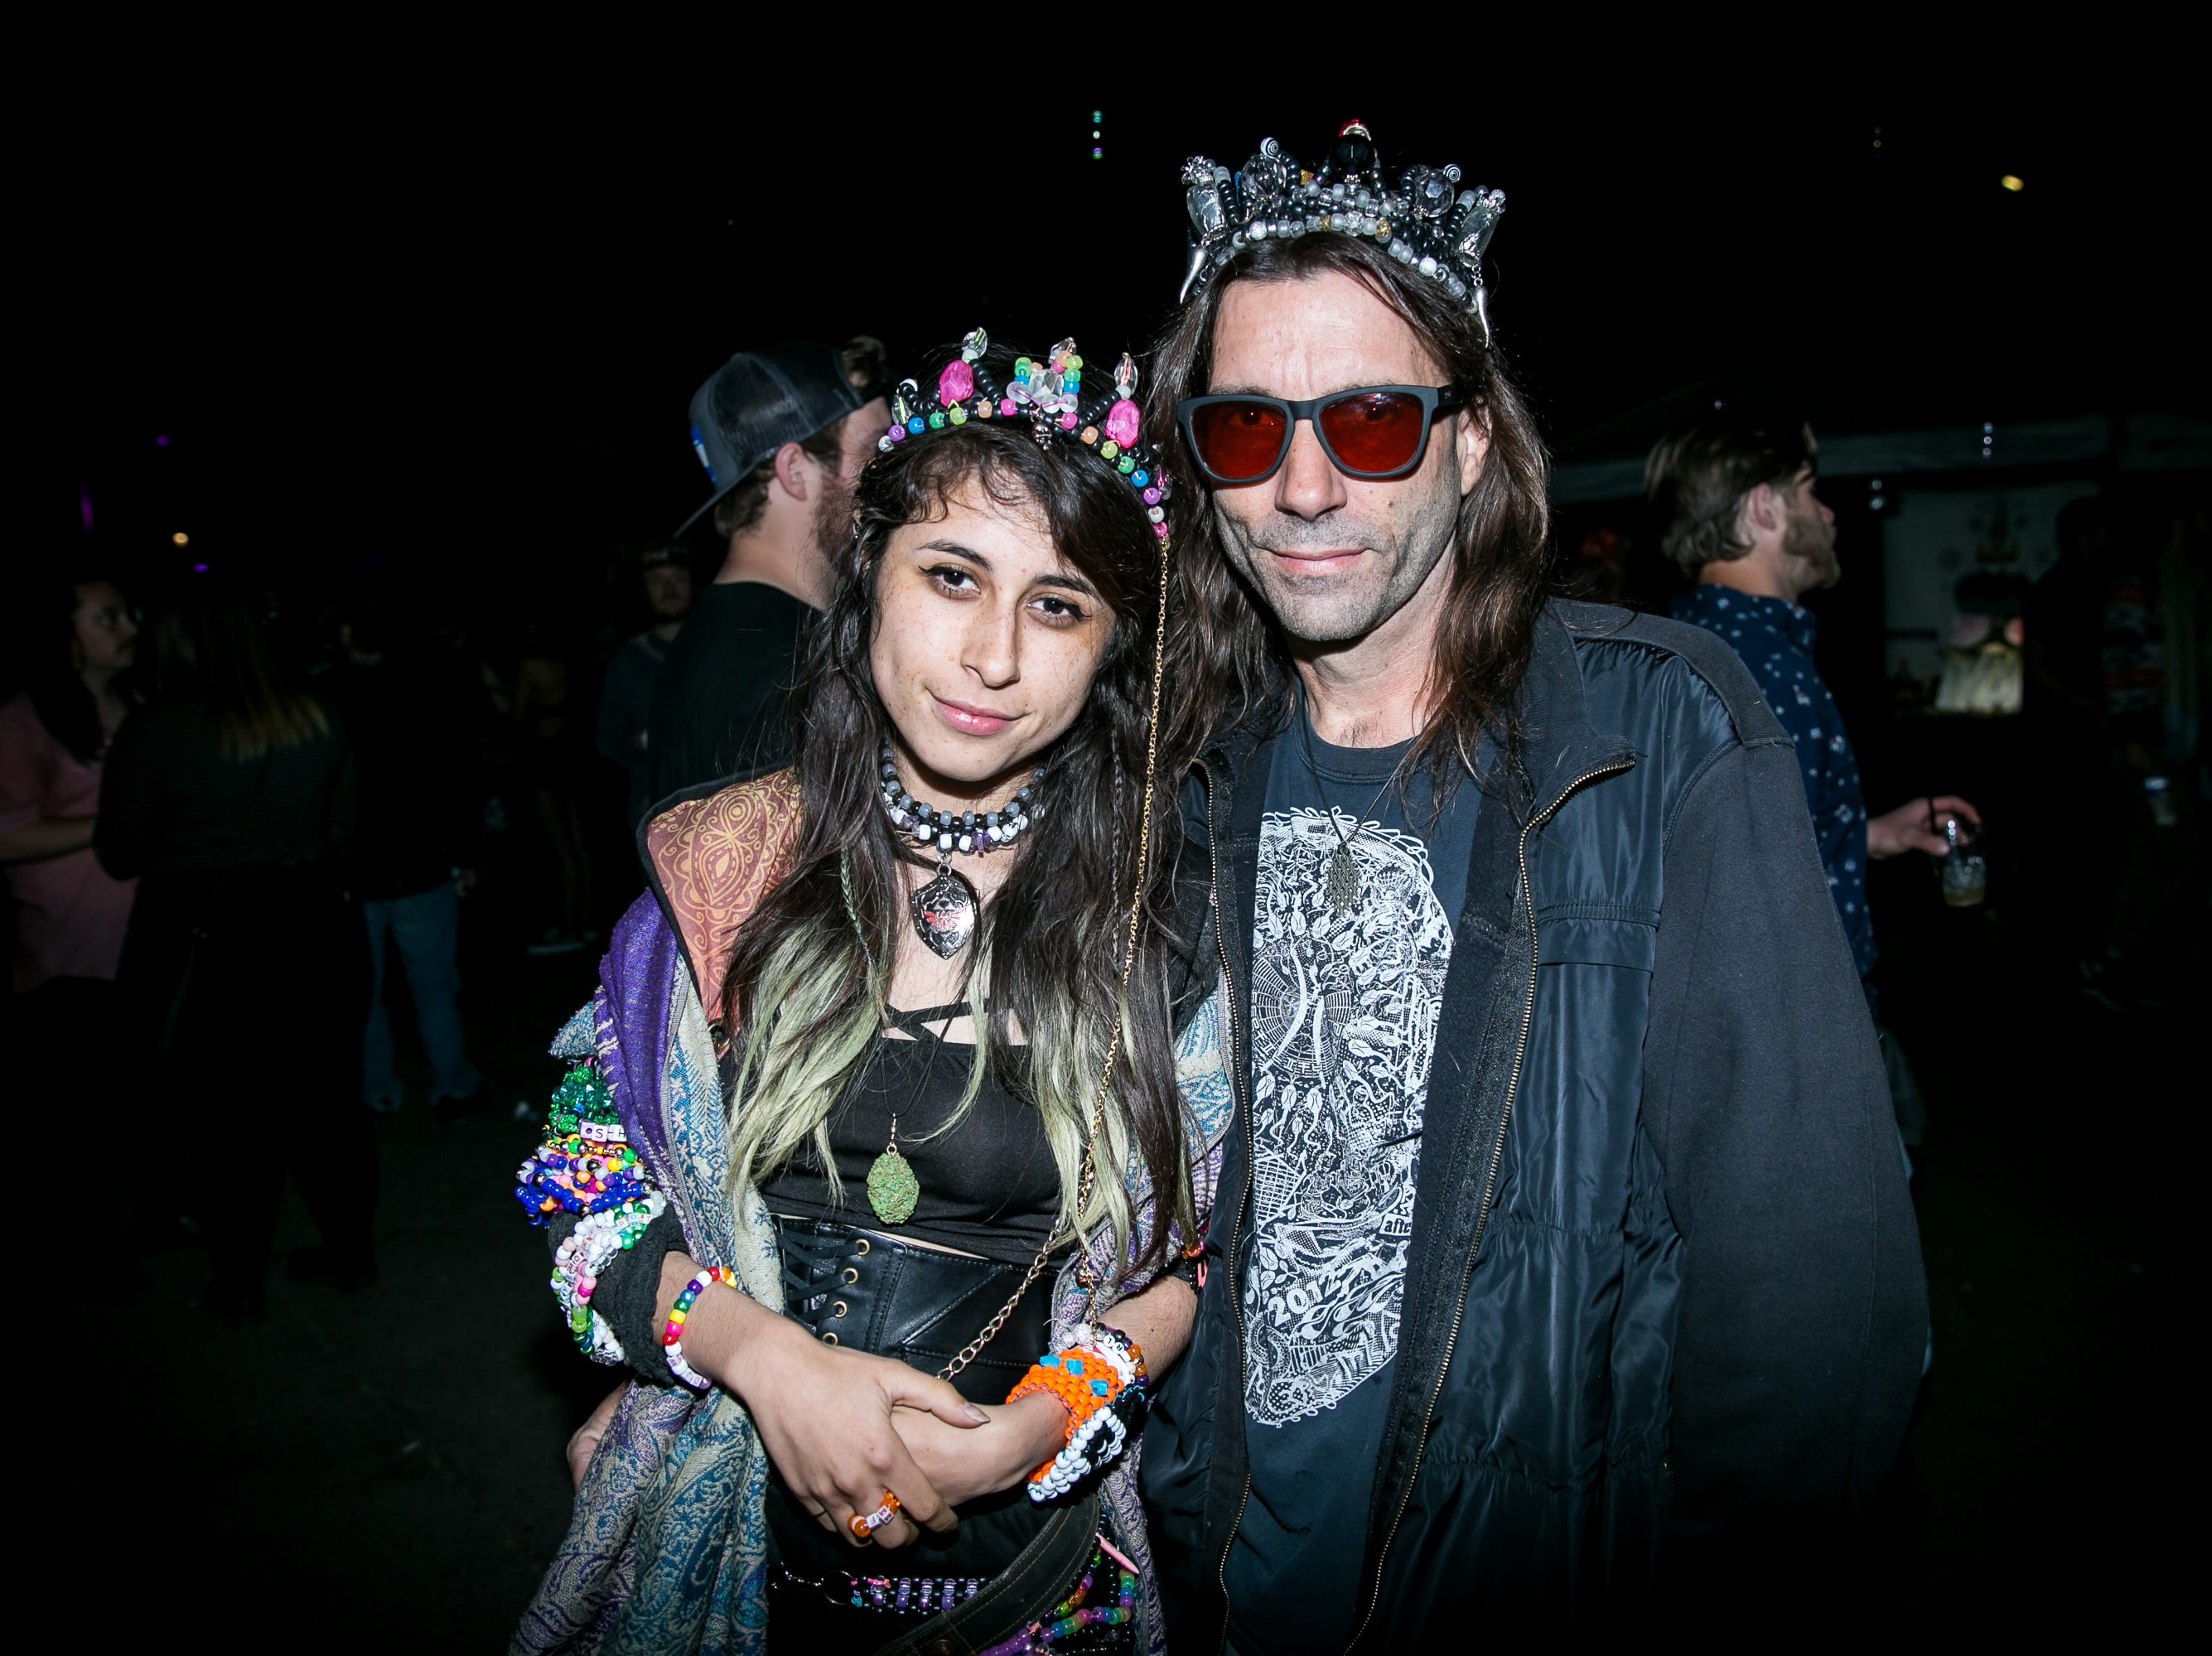 These two were party royalty at the Full Moon Festival at the Pressroom on March 23, 2019.